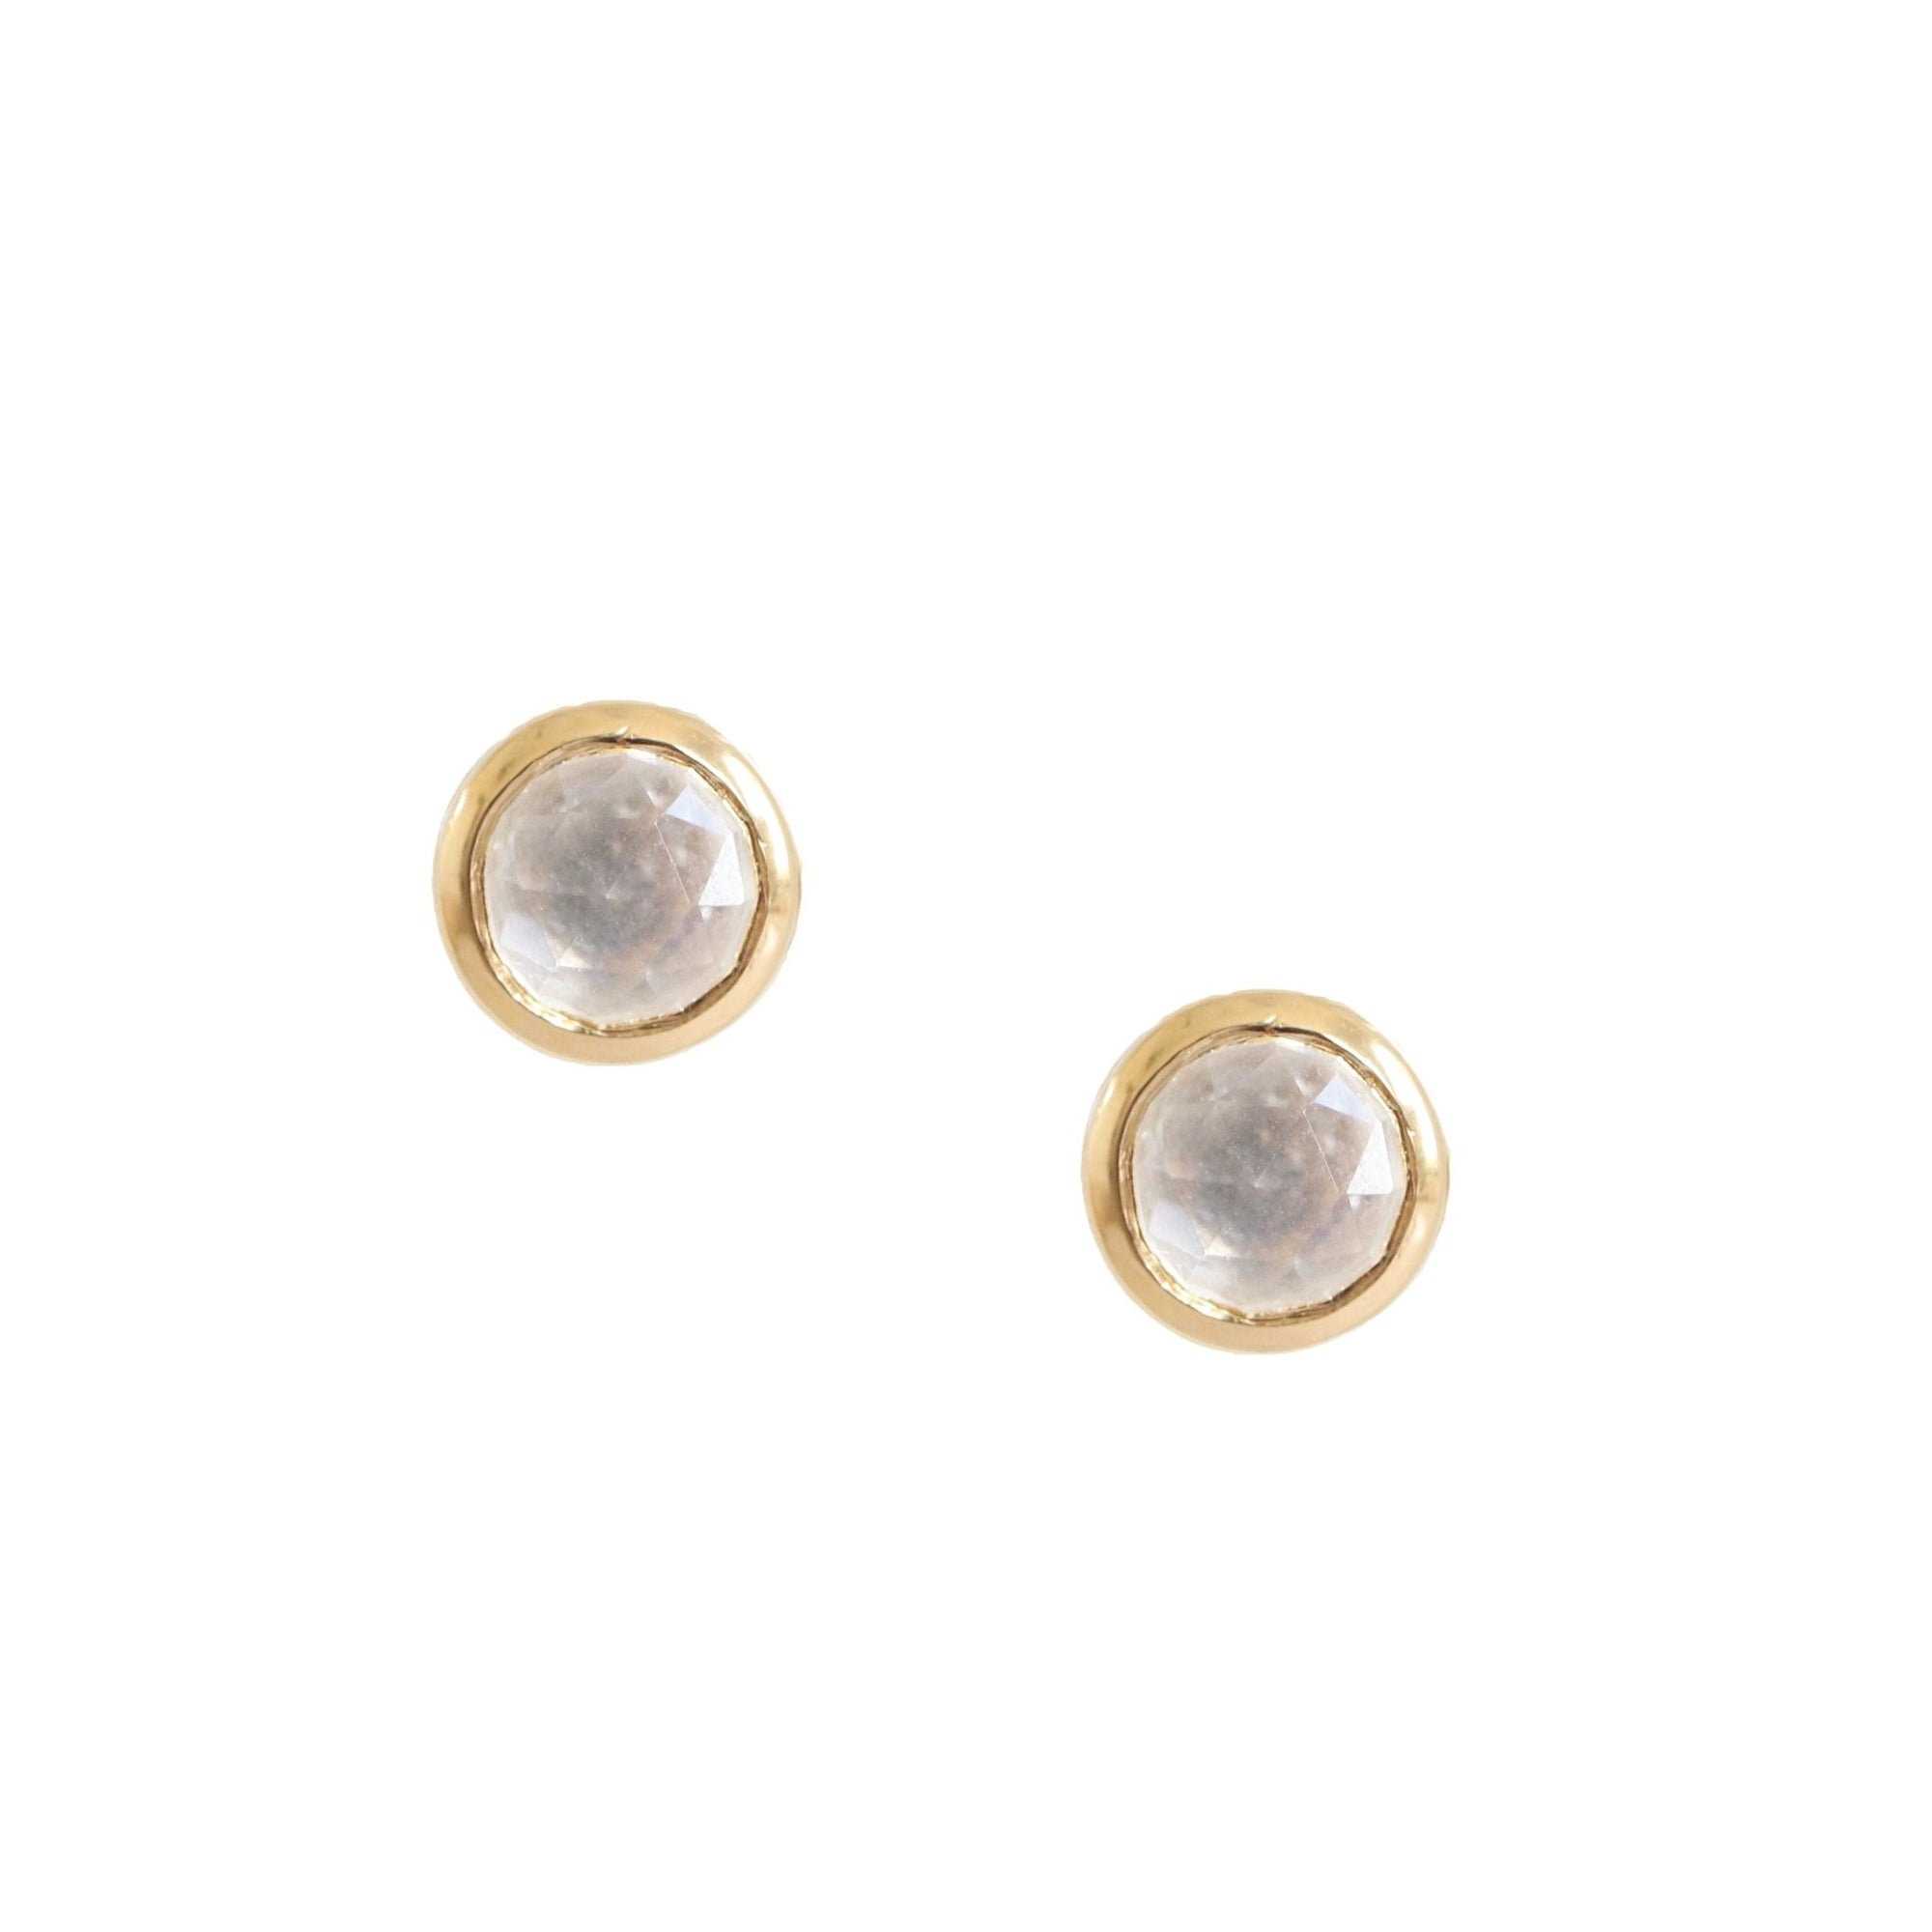 DAINTY LEGACY STUDS - WHITE TOPAZ & GOLD - SO PRETTY CARA COTTER